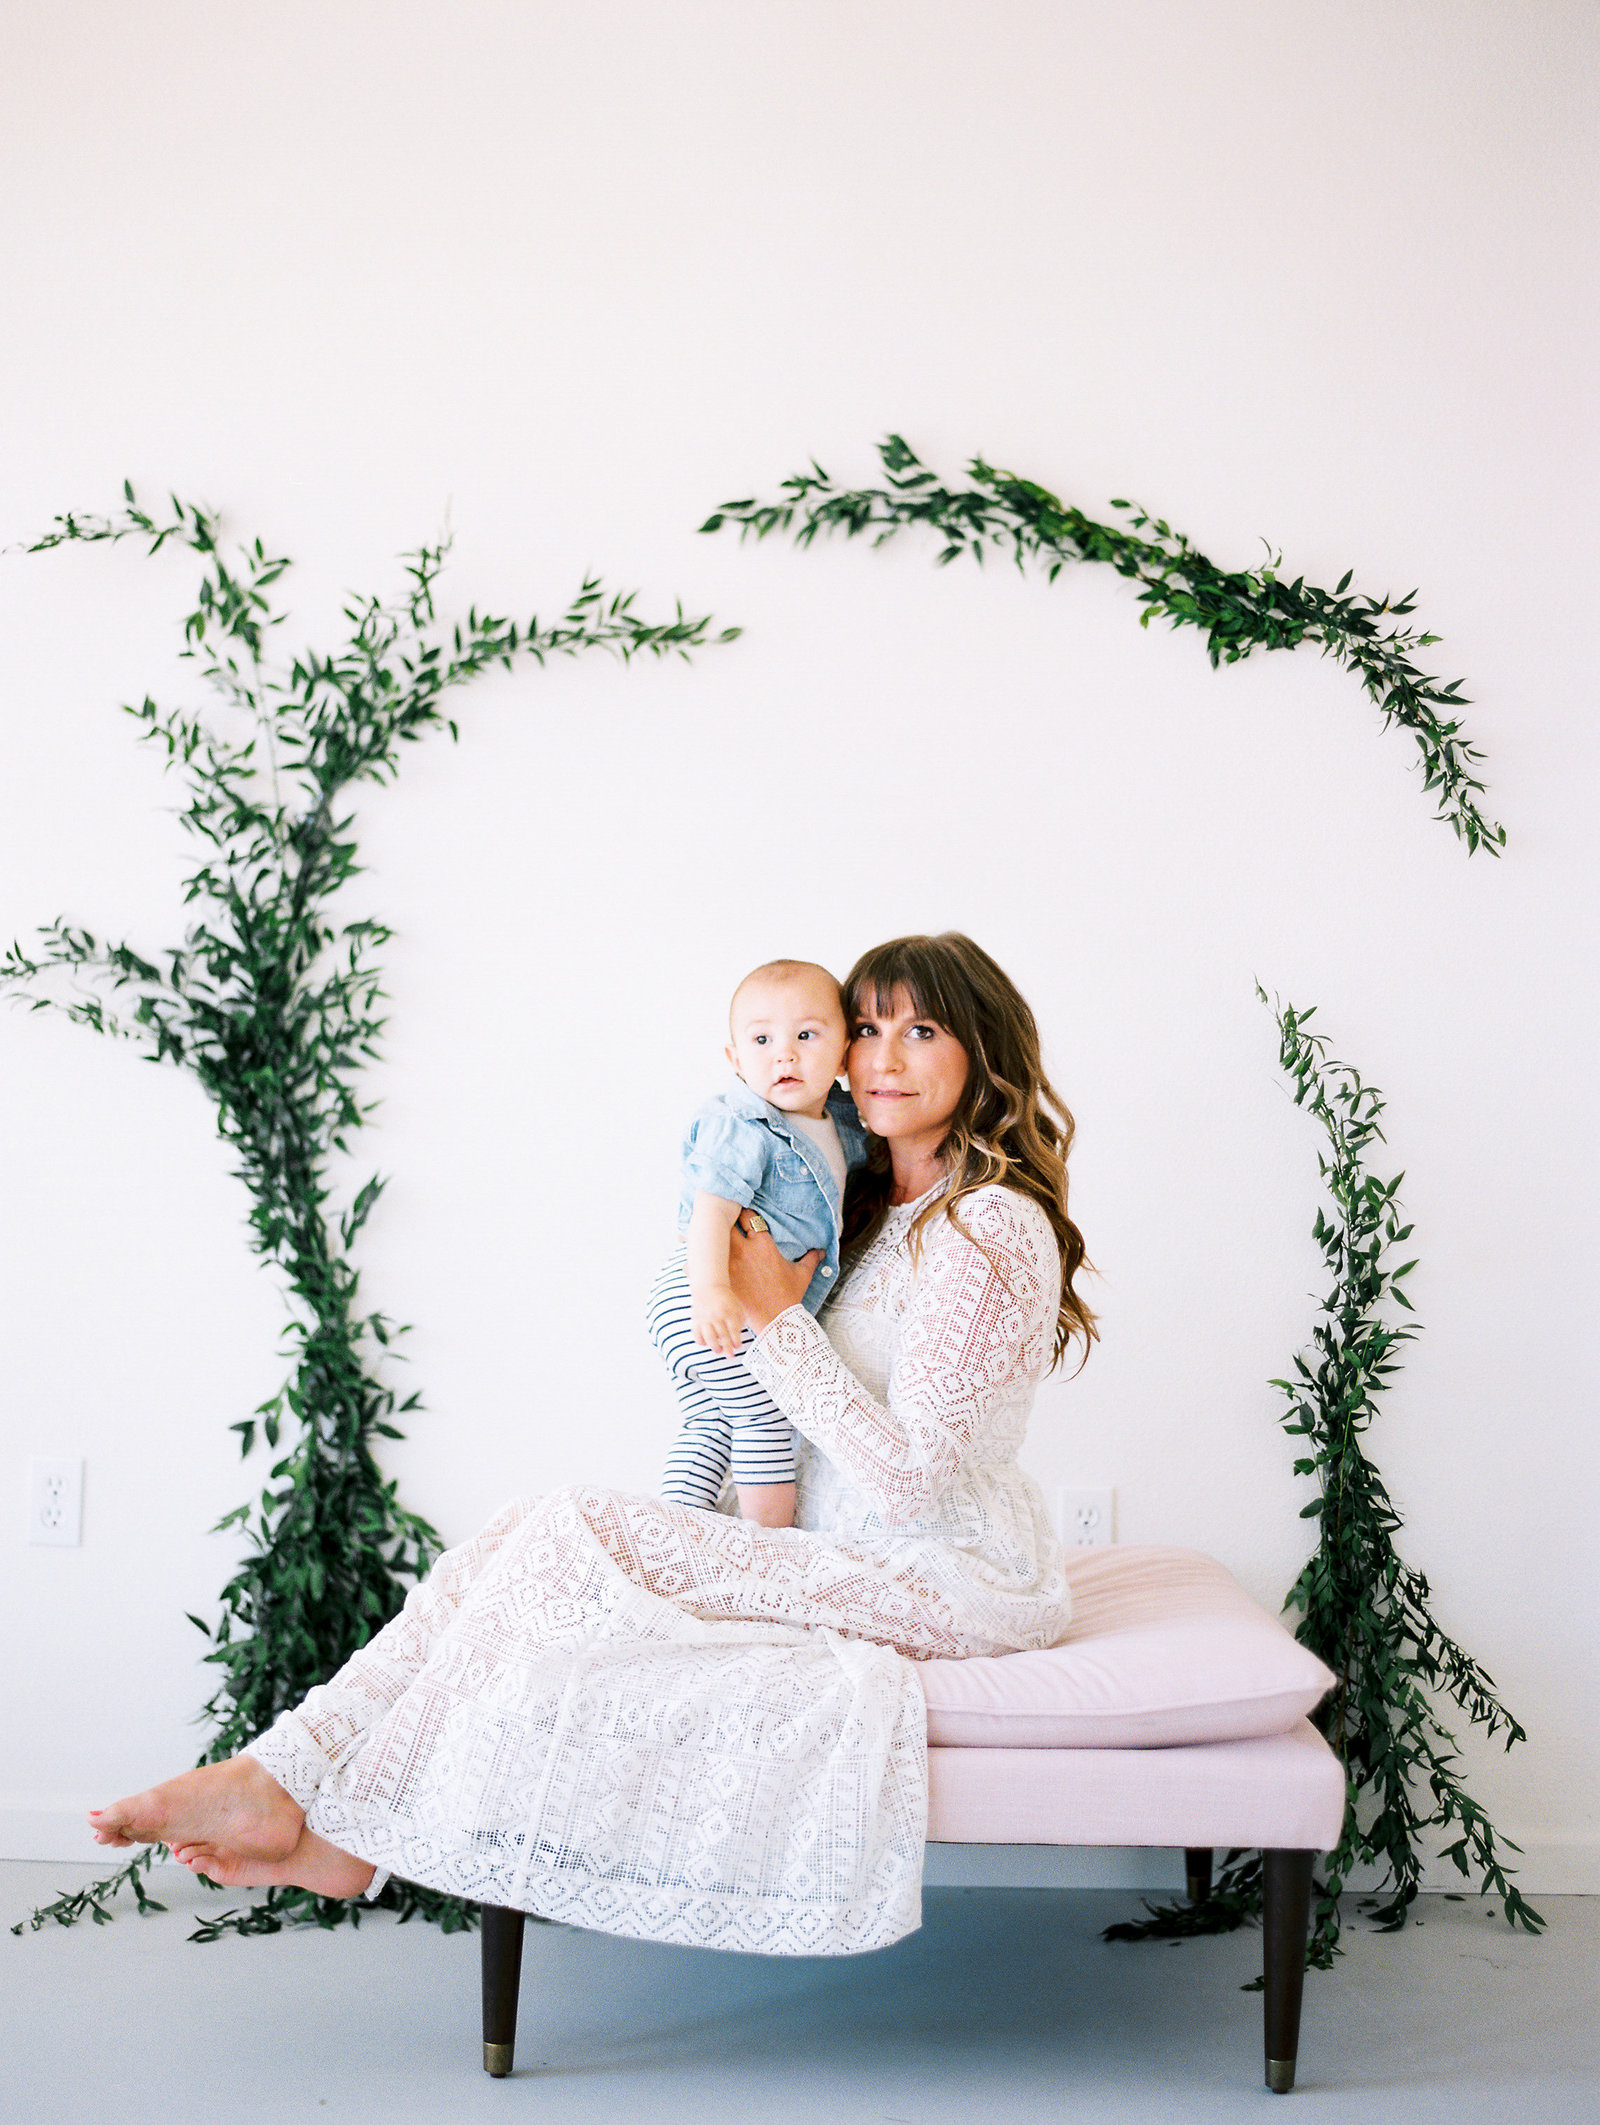 natalie bray studios, portait photographer, san diego family photographer, la jolla photographer, maternity photographer -2-6